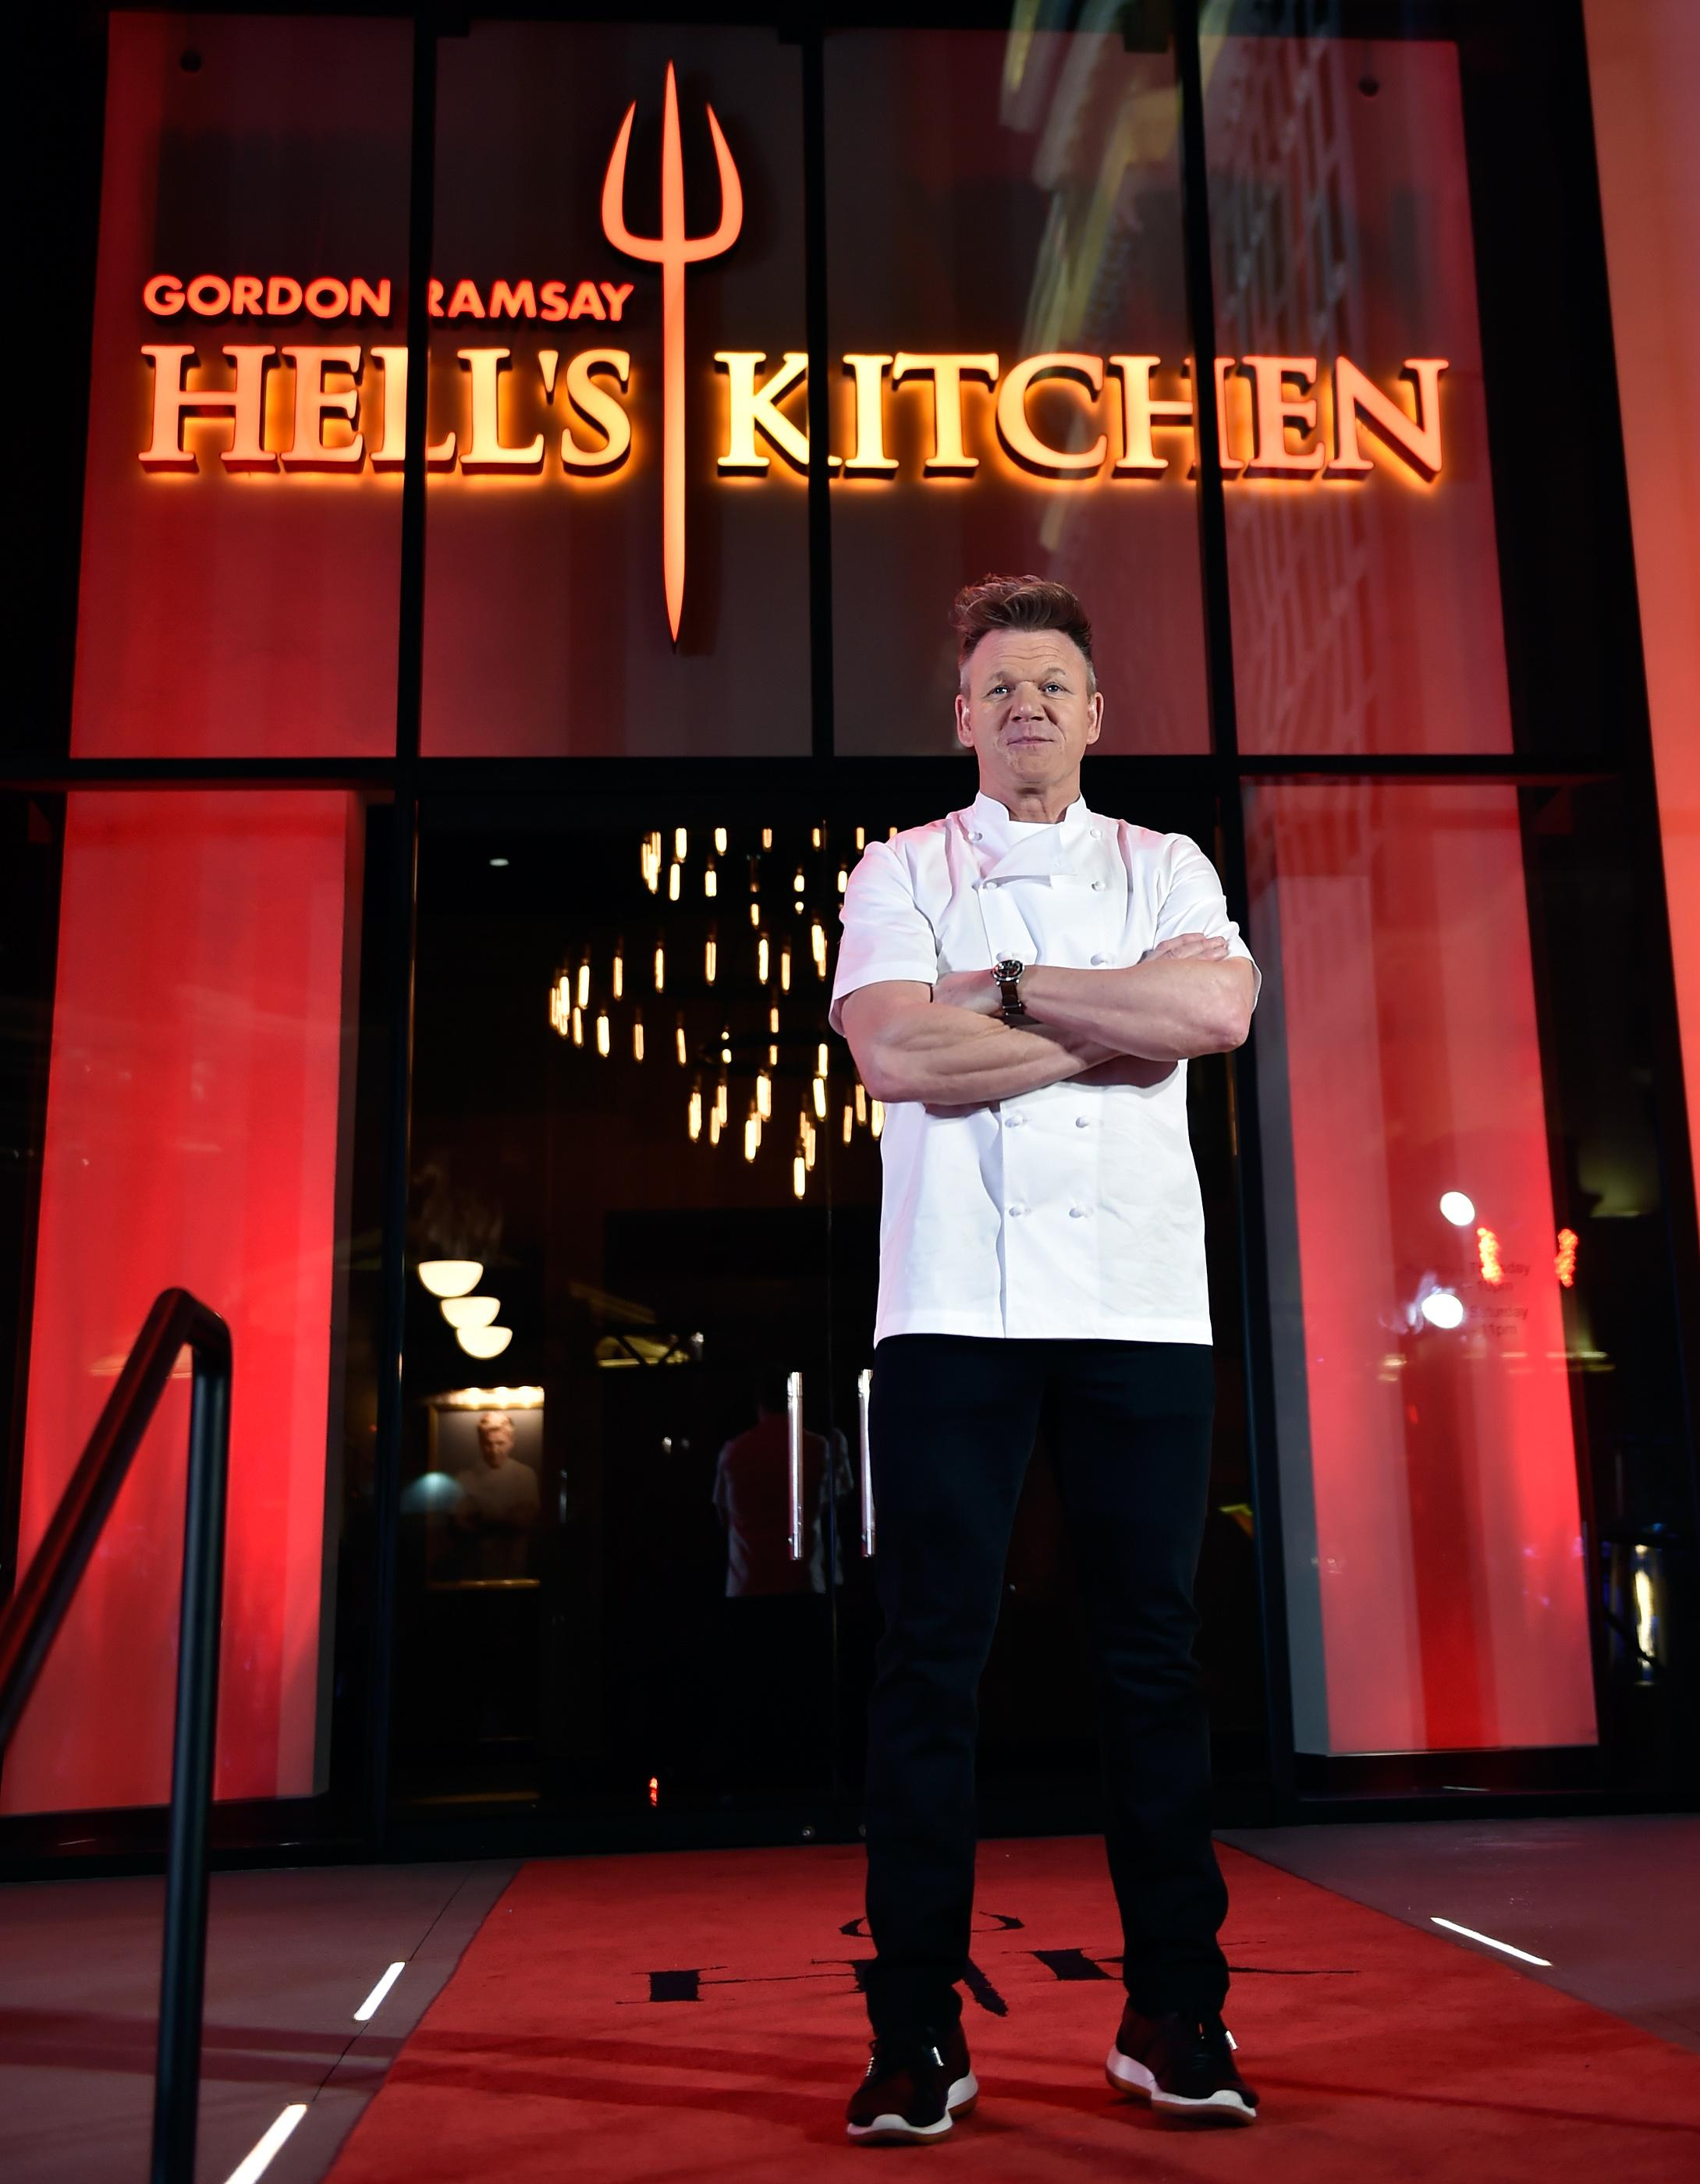 Chef Gordon Ramsay attends the grand opening of Gordon Ramsay Hell's Kitchen at Caesars Palace Friday, Jan. 26, 2018, in Las Vegas. CREDIT: David Becker/Las Vegas News Bureau